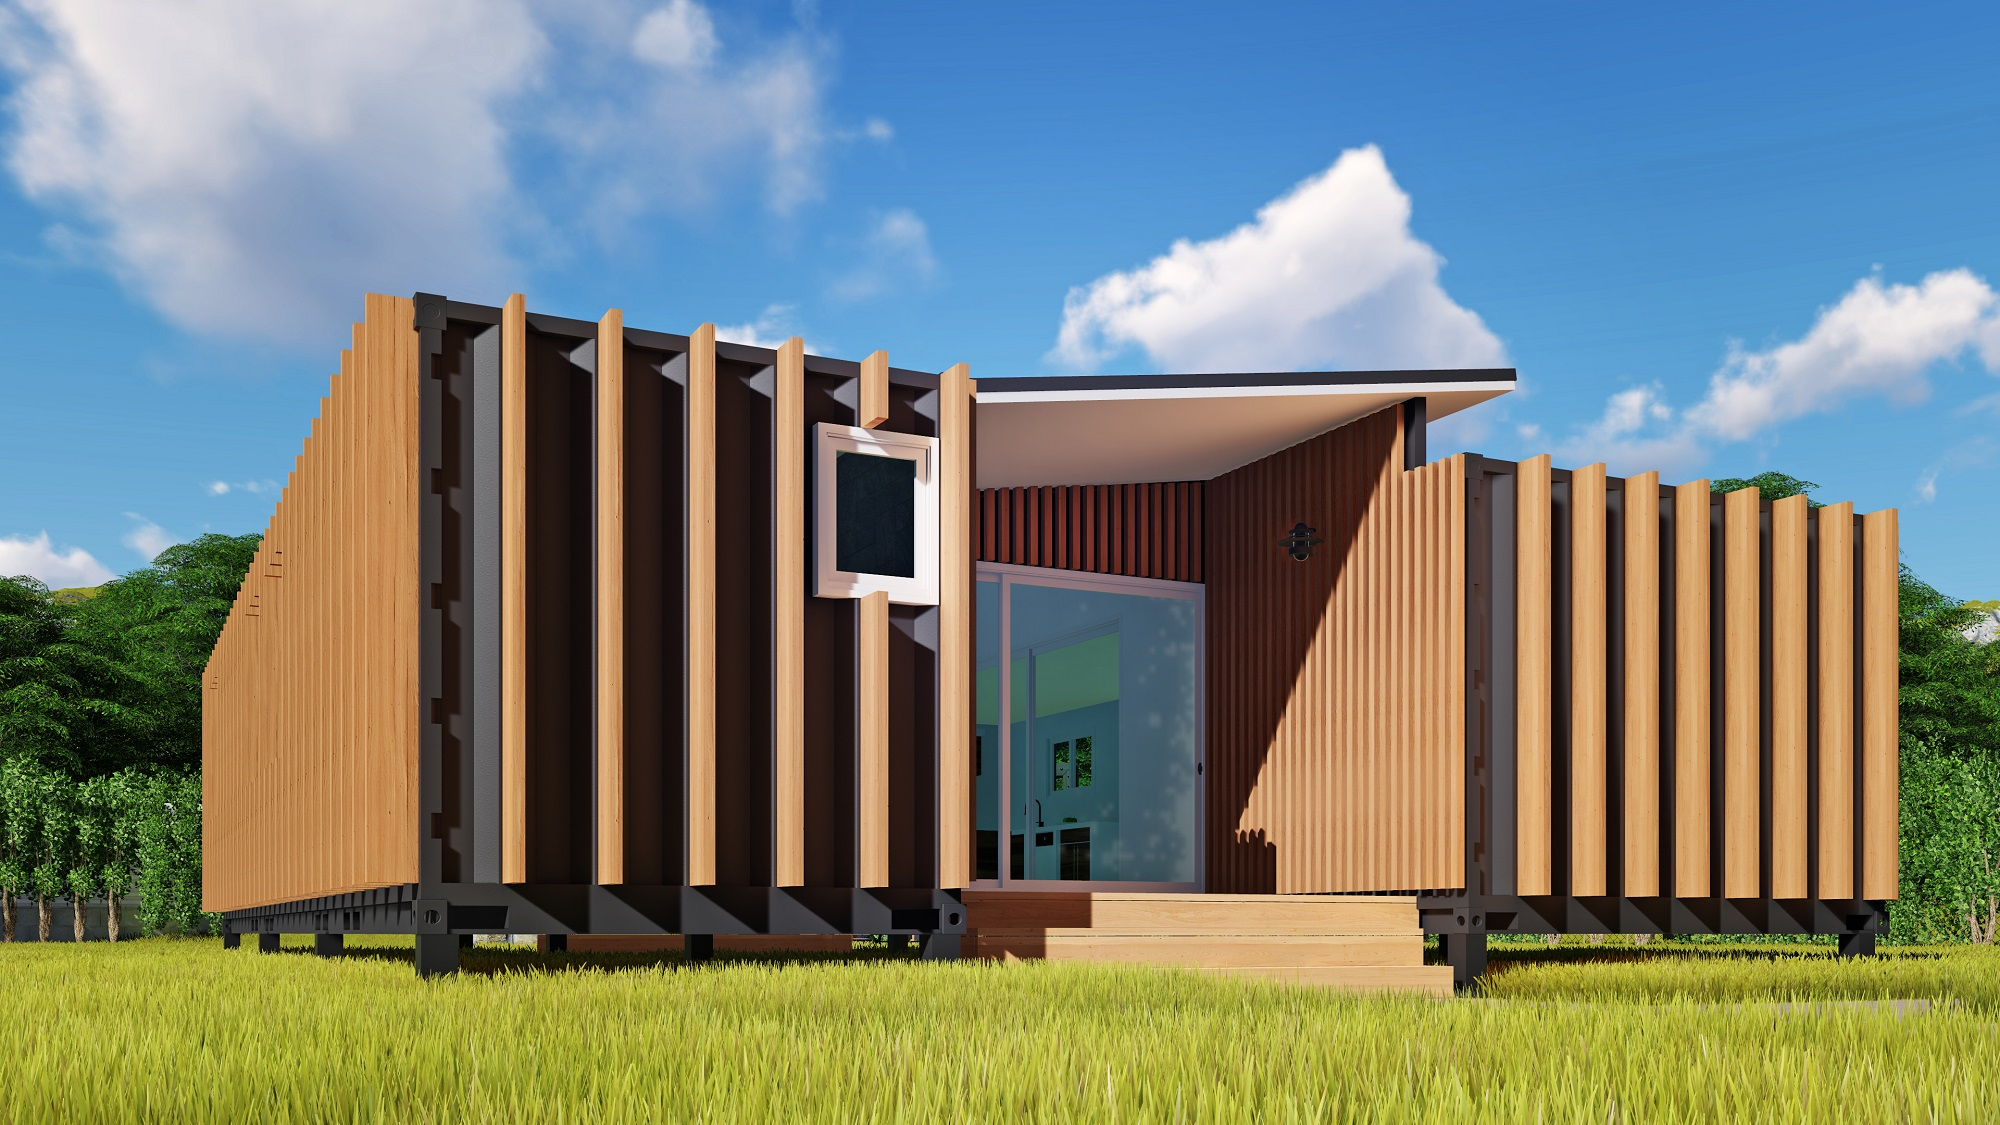 good sch x ft container home plan with breezeway eco home designer with eco container home